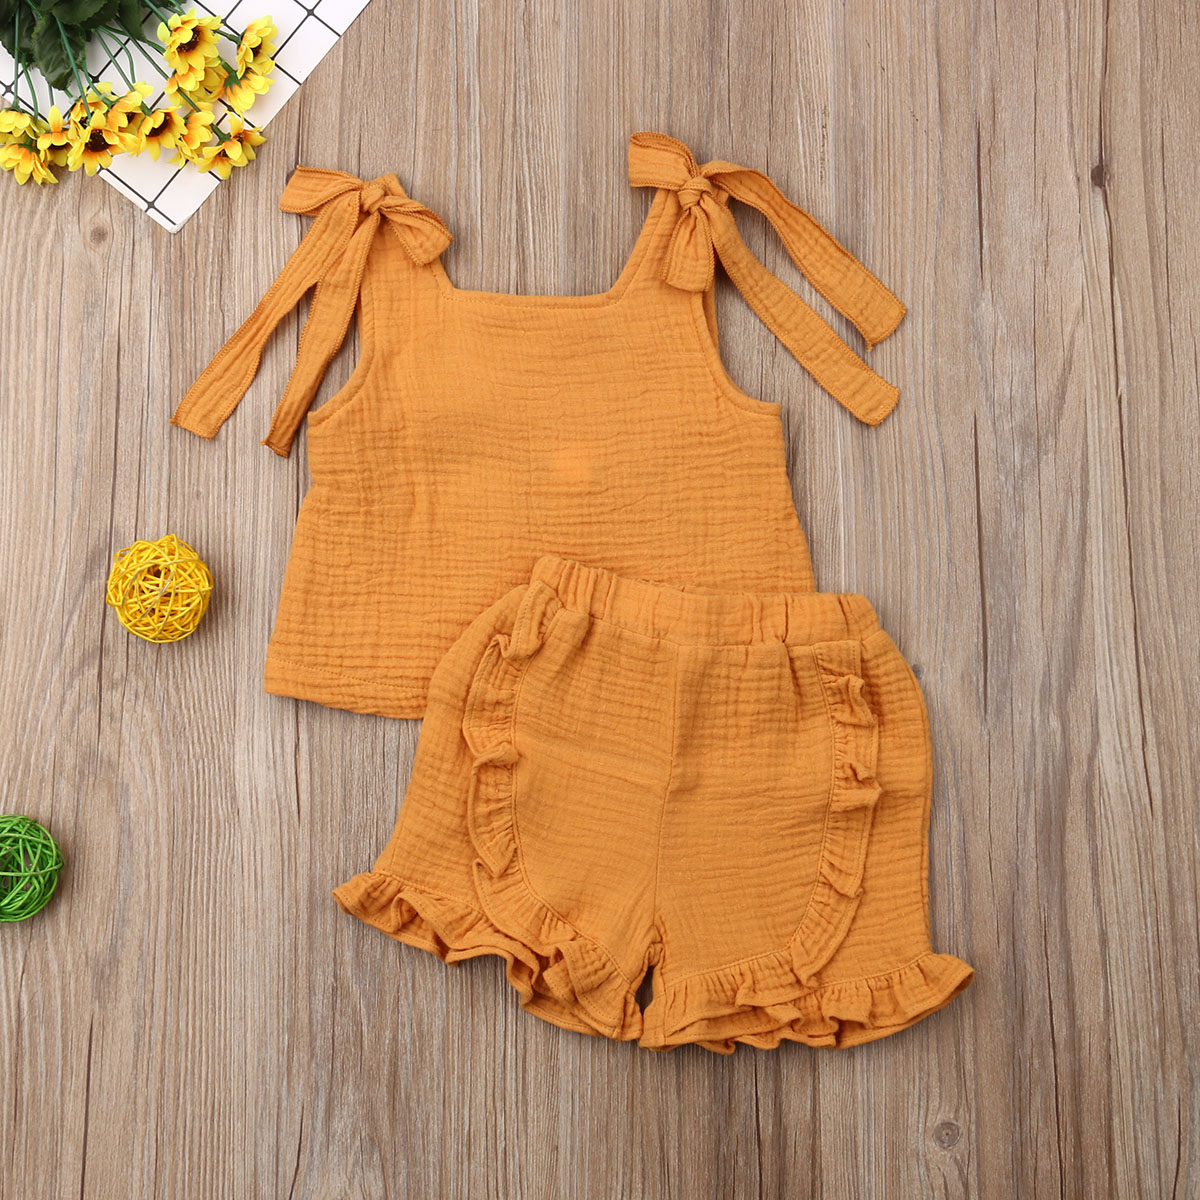 Pudcoco Summer Toddler Baby Girl Clothes Solid Color Sleeveless Tops Ruffle Short Pants 2Pcs Outfits Cotton Casual Clothes